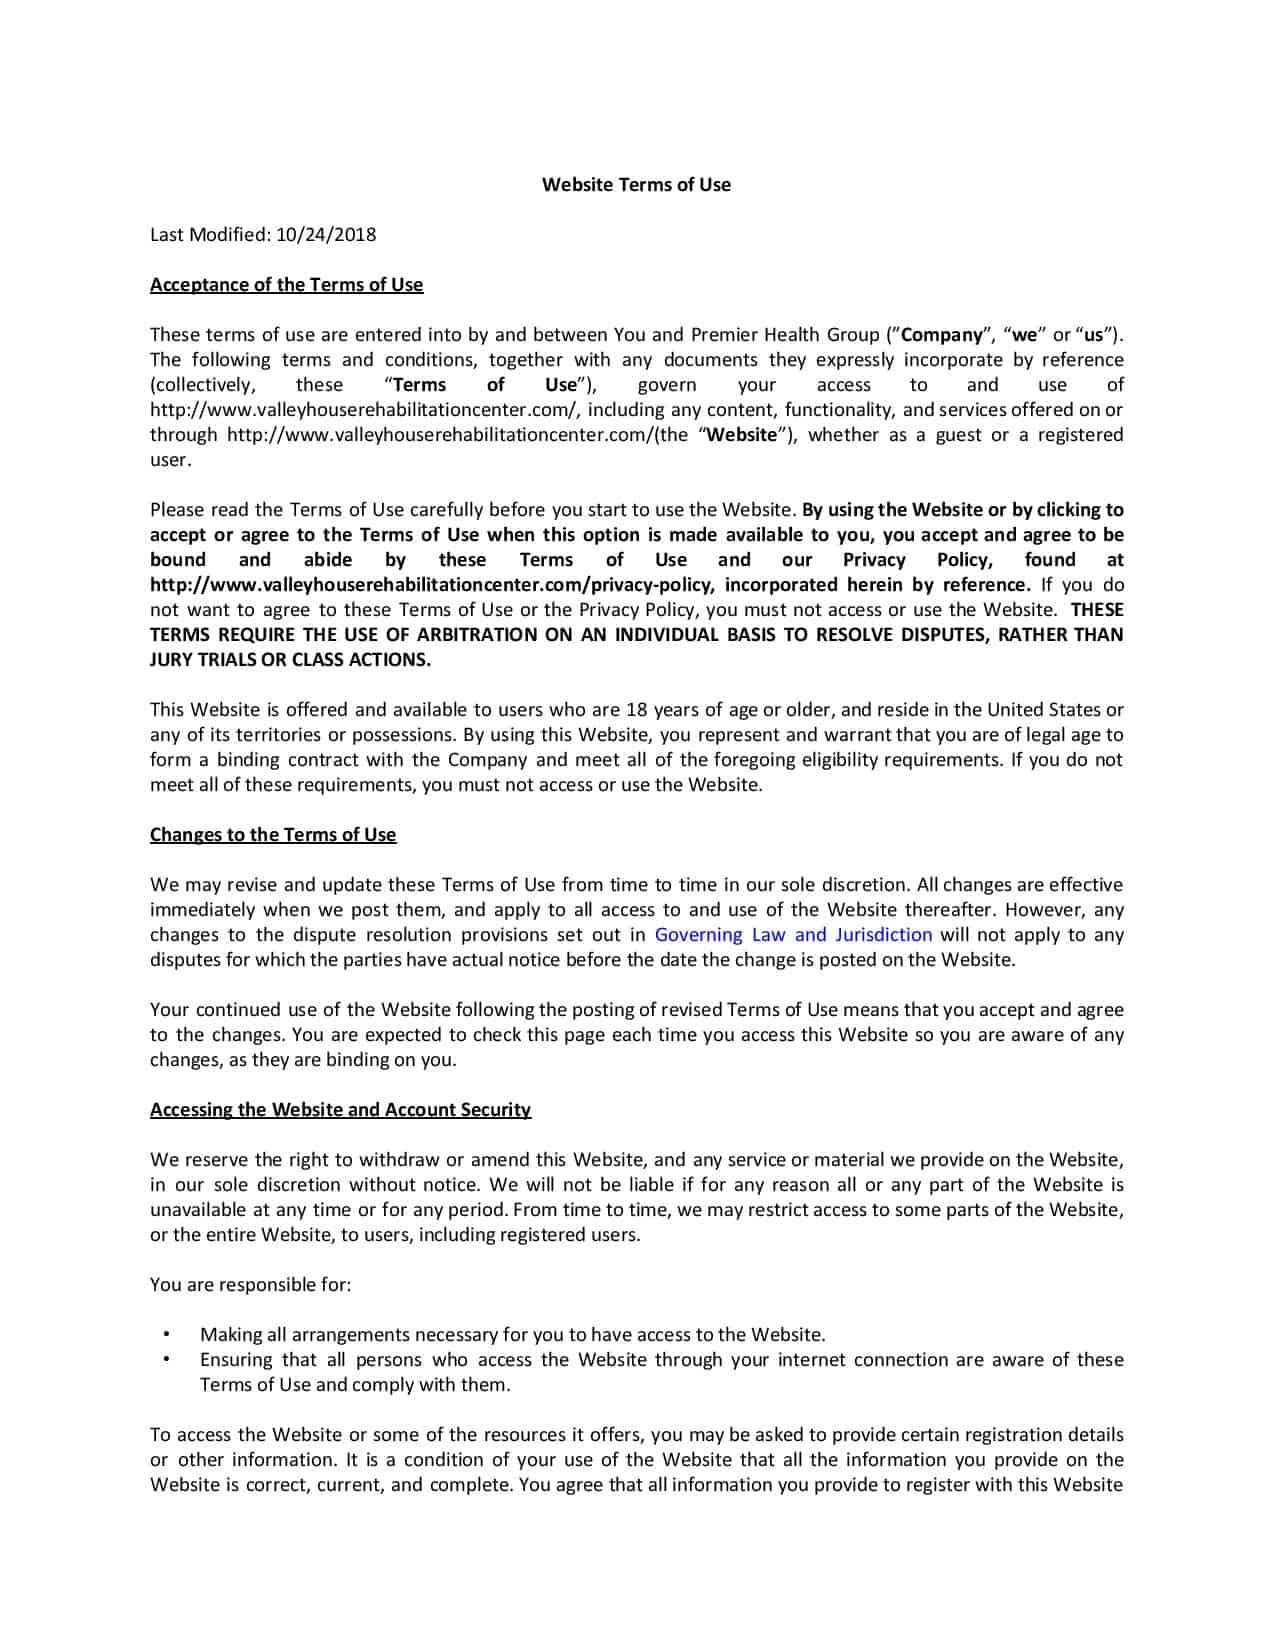 valleyhouserehabilitationcenter Terms of Use-page-001